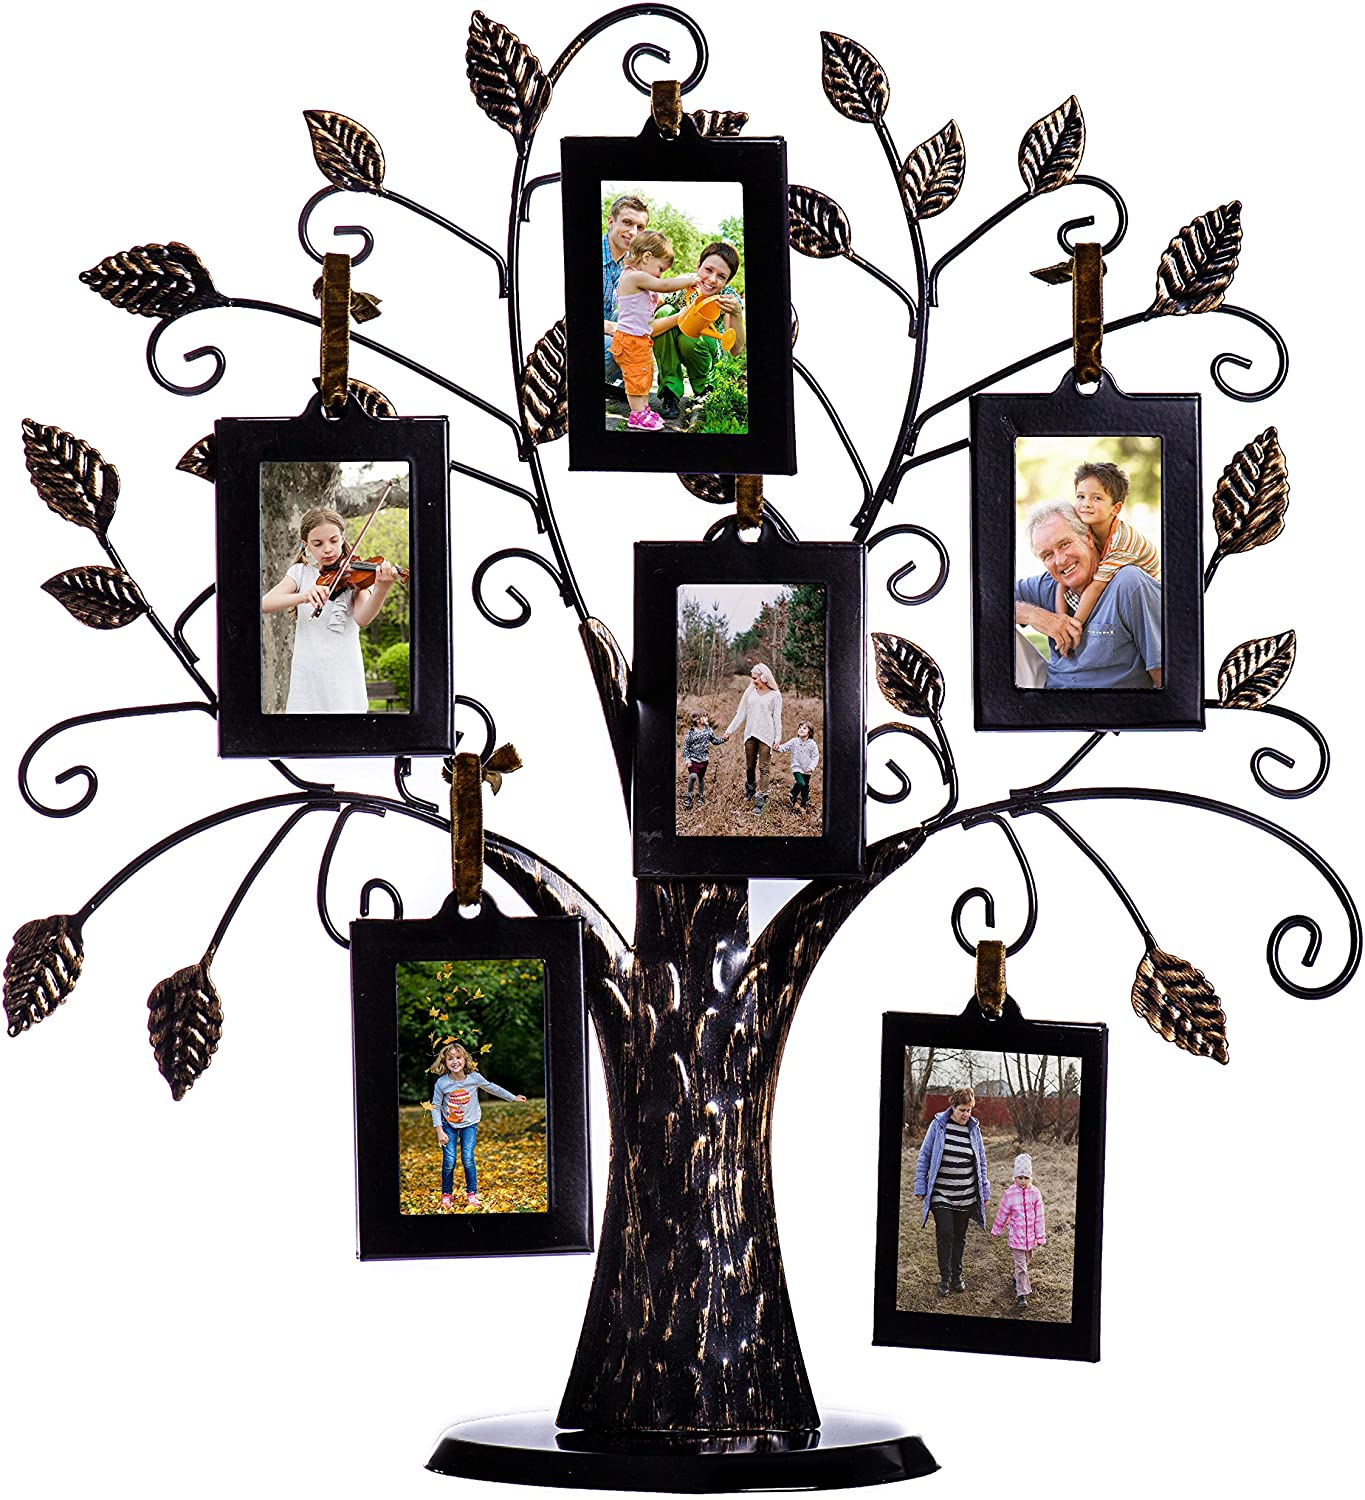 One of the best gift ideas for women over 40 that they are going to cherish forever is a family tree picture frame. It will look beautiful on the wall with all her family photos and make her heart feel all warm and cozy whenever she looks at it.